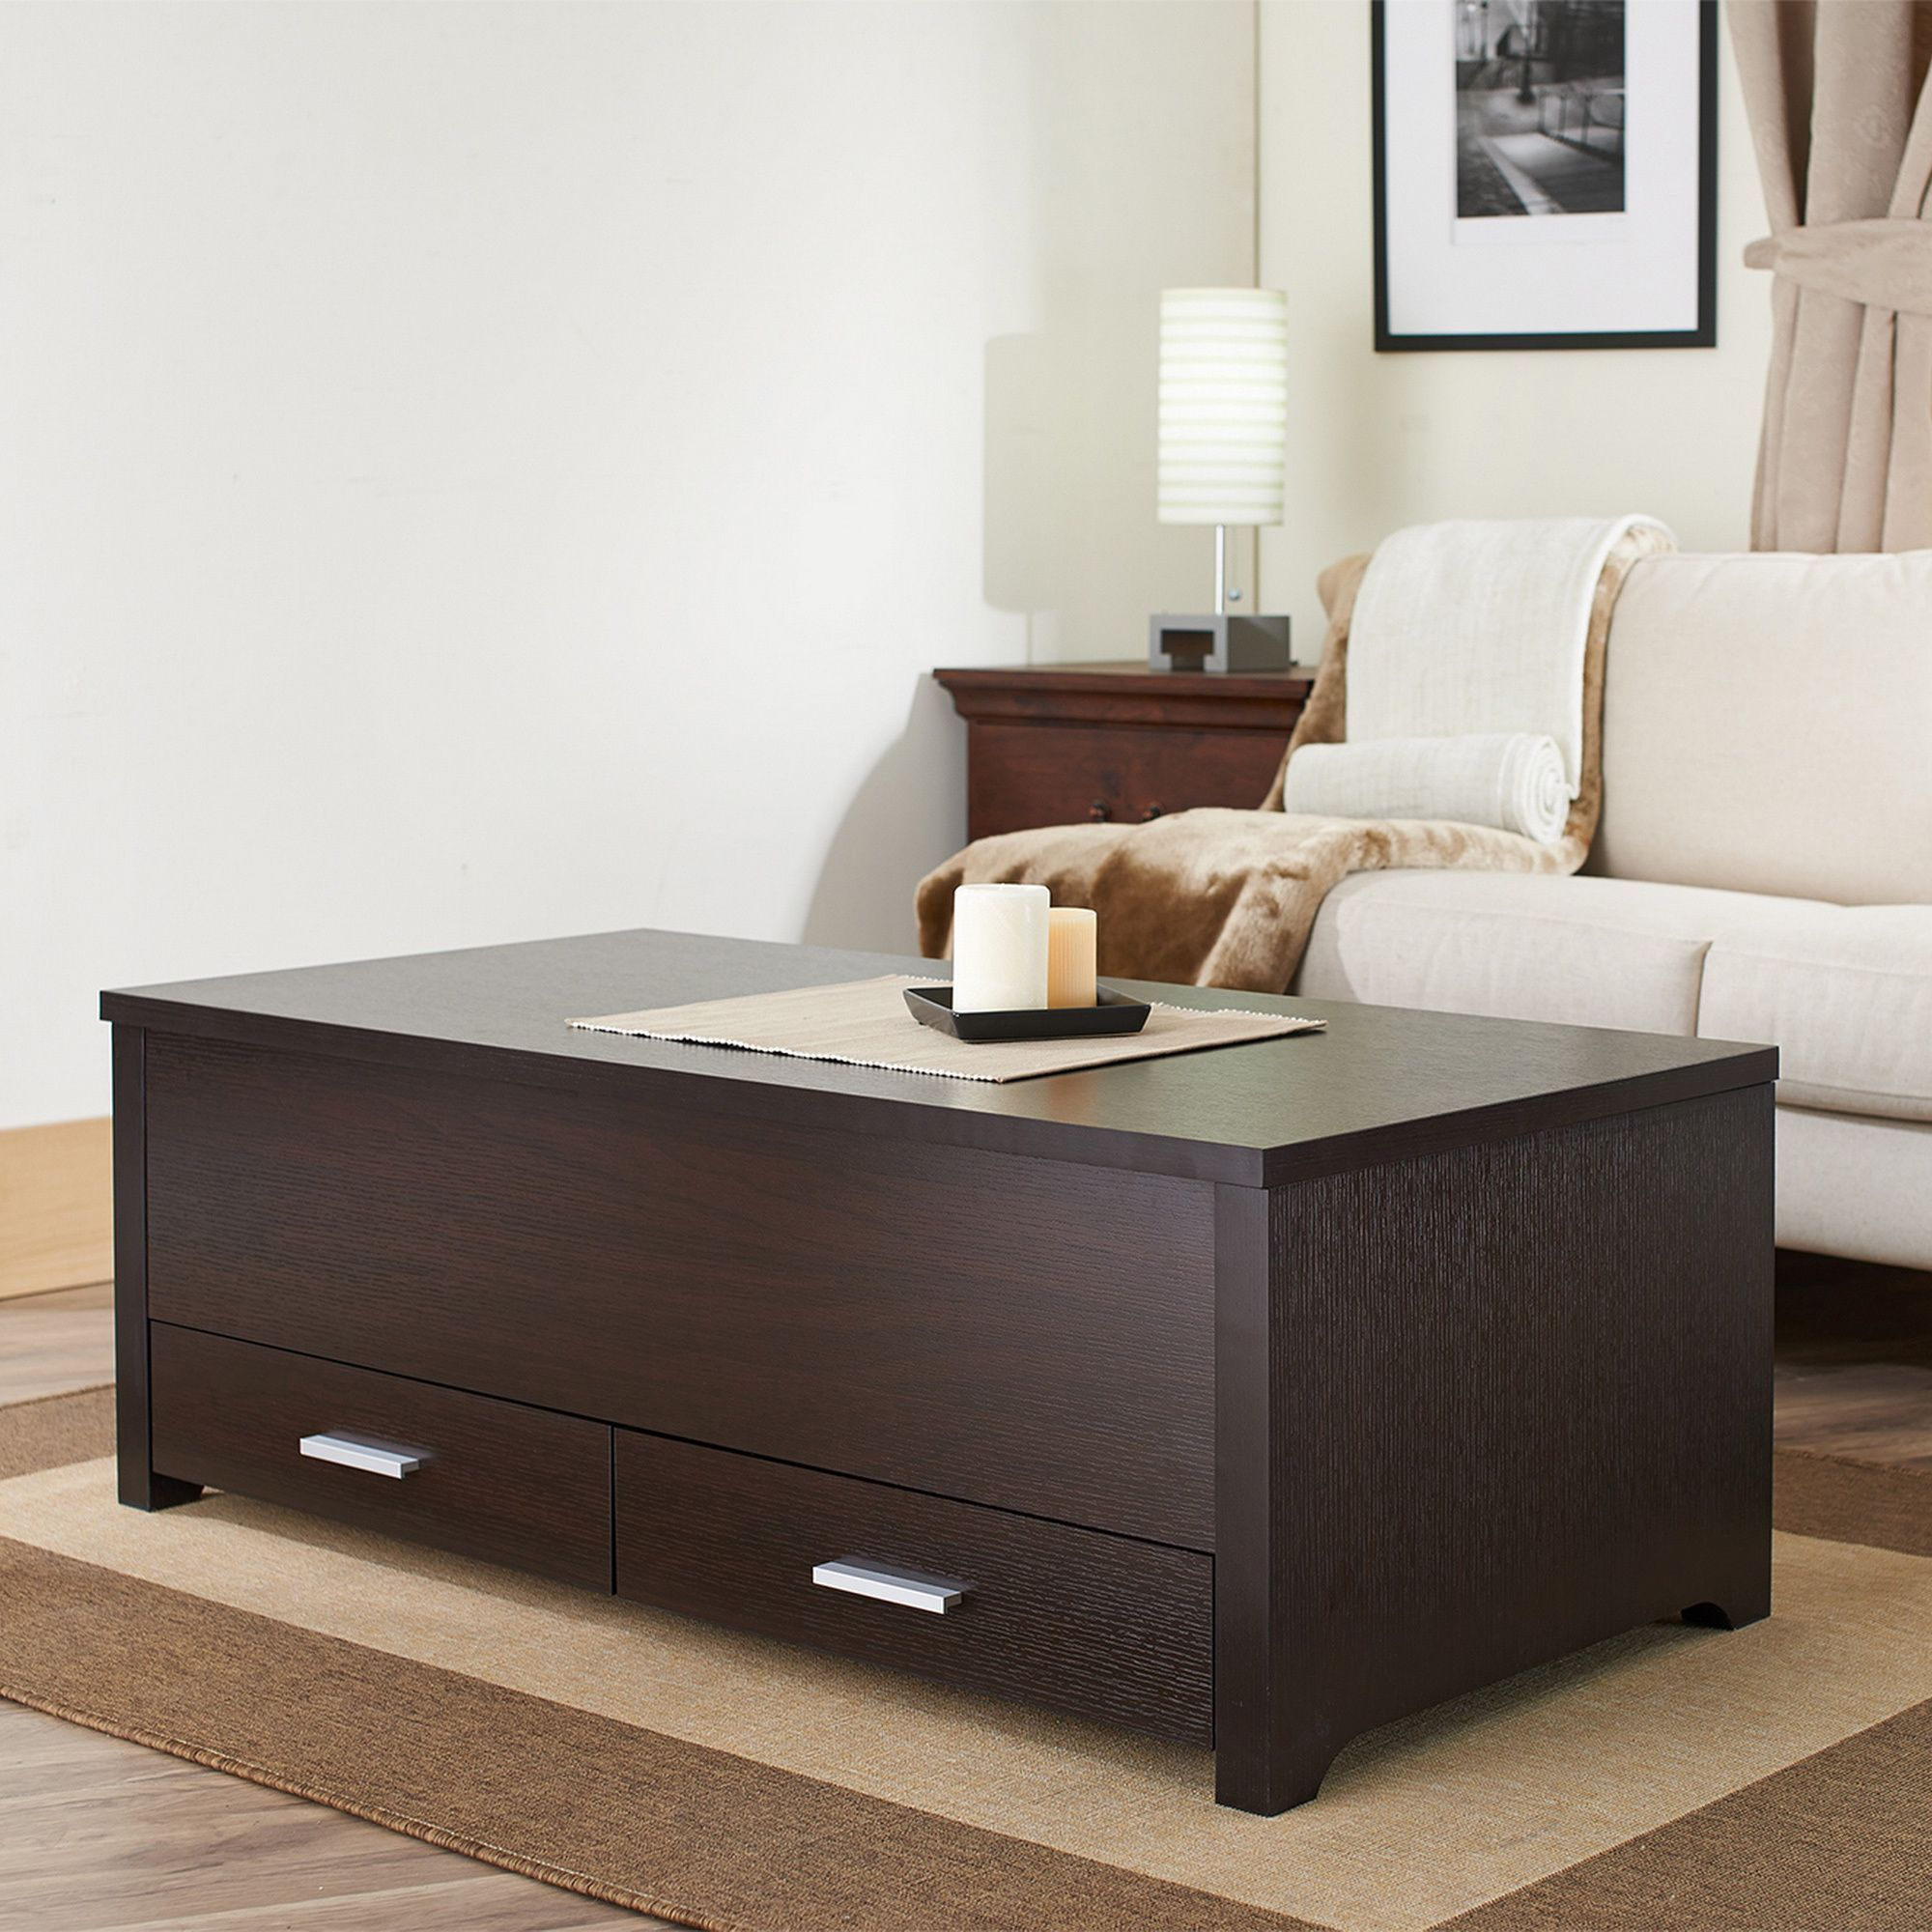 Furniture of America Knox Dark Espresso Storage Box Coffee Table (Espresso), Brown